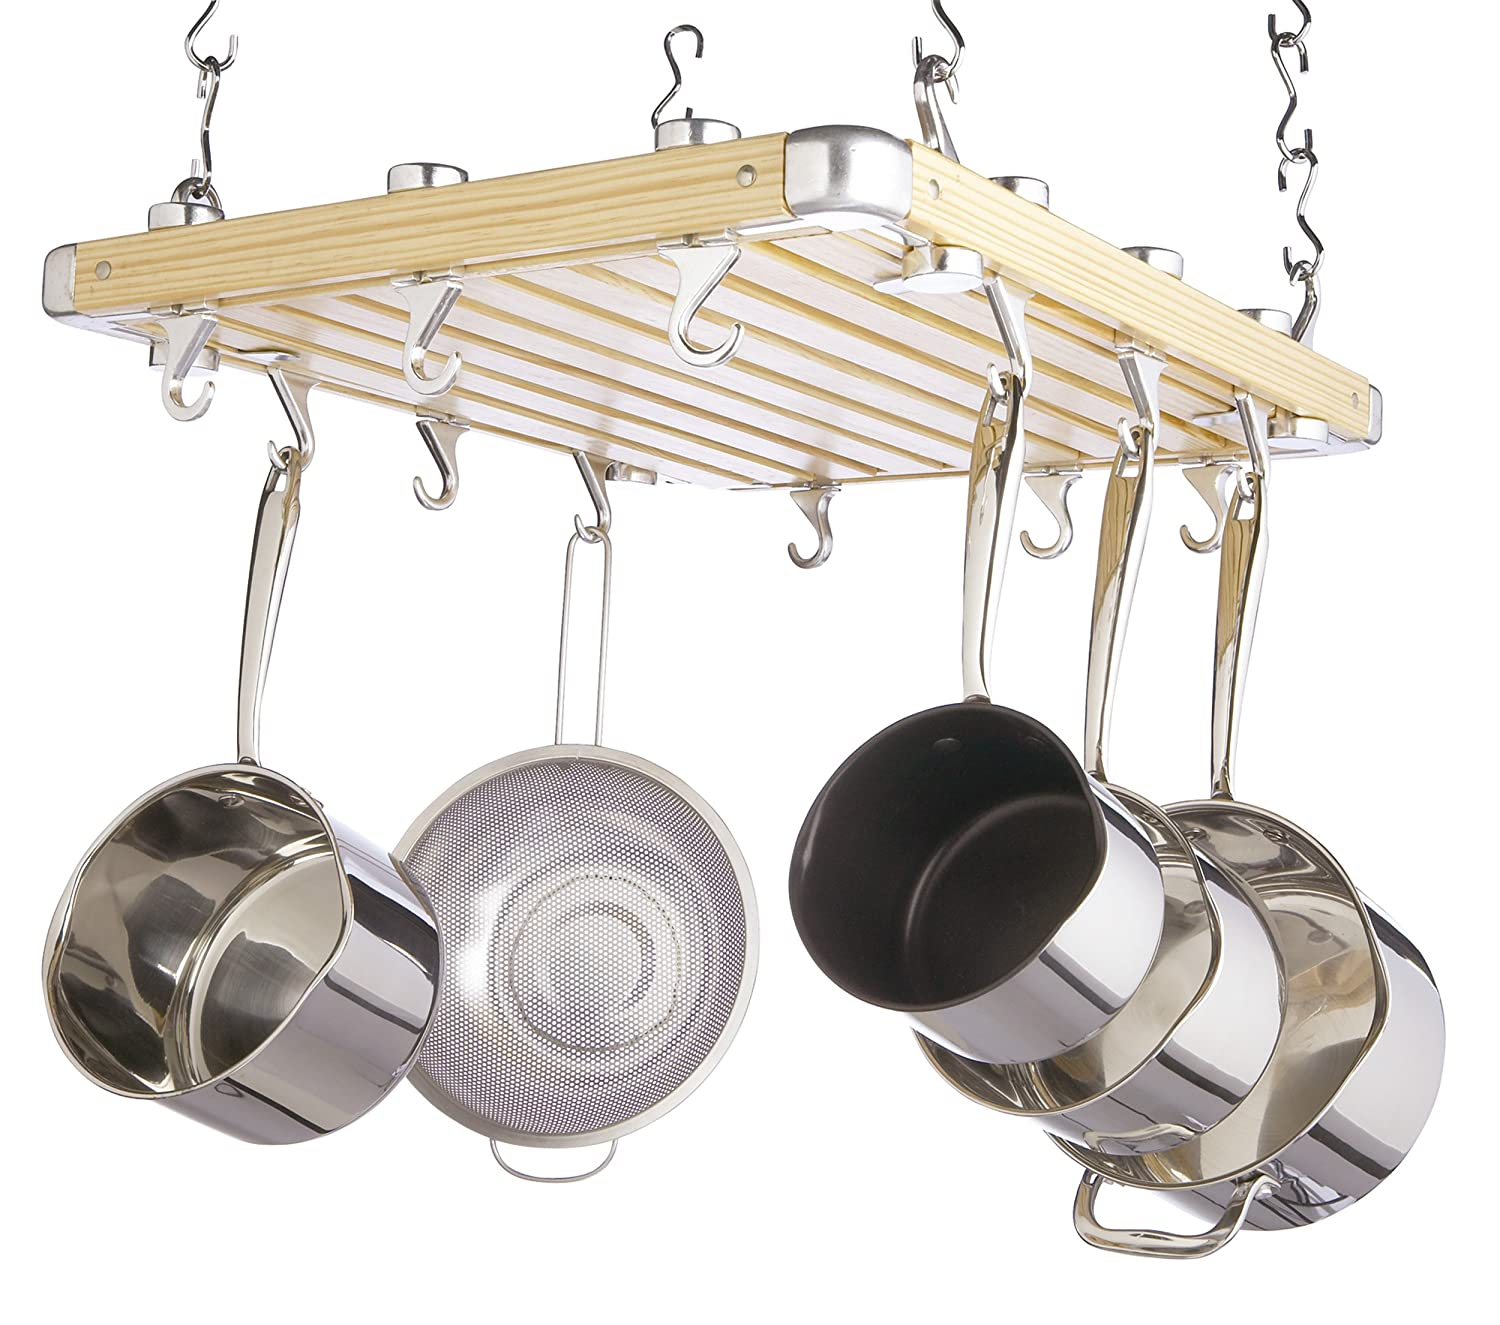 adams extension k rack kitchen jk and hooks pot lrg wine storage j product